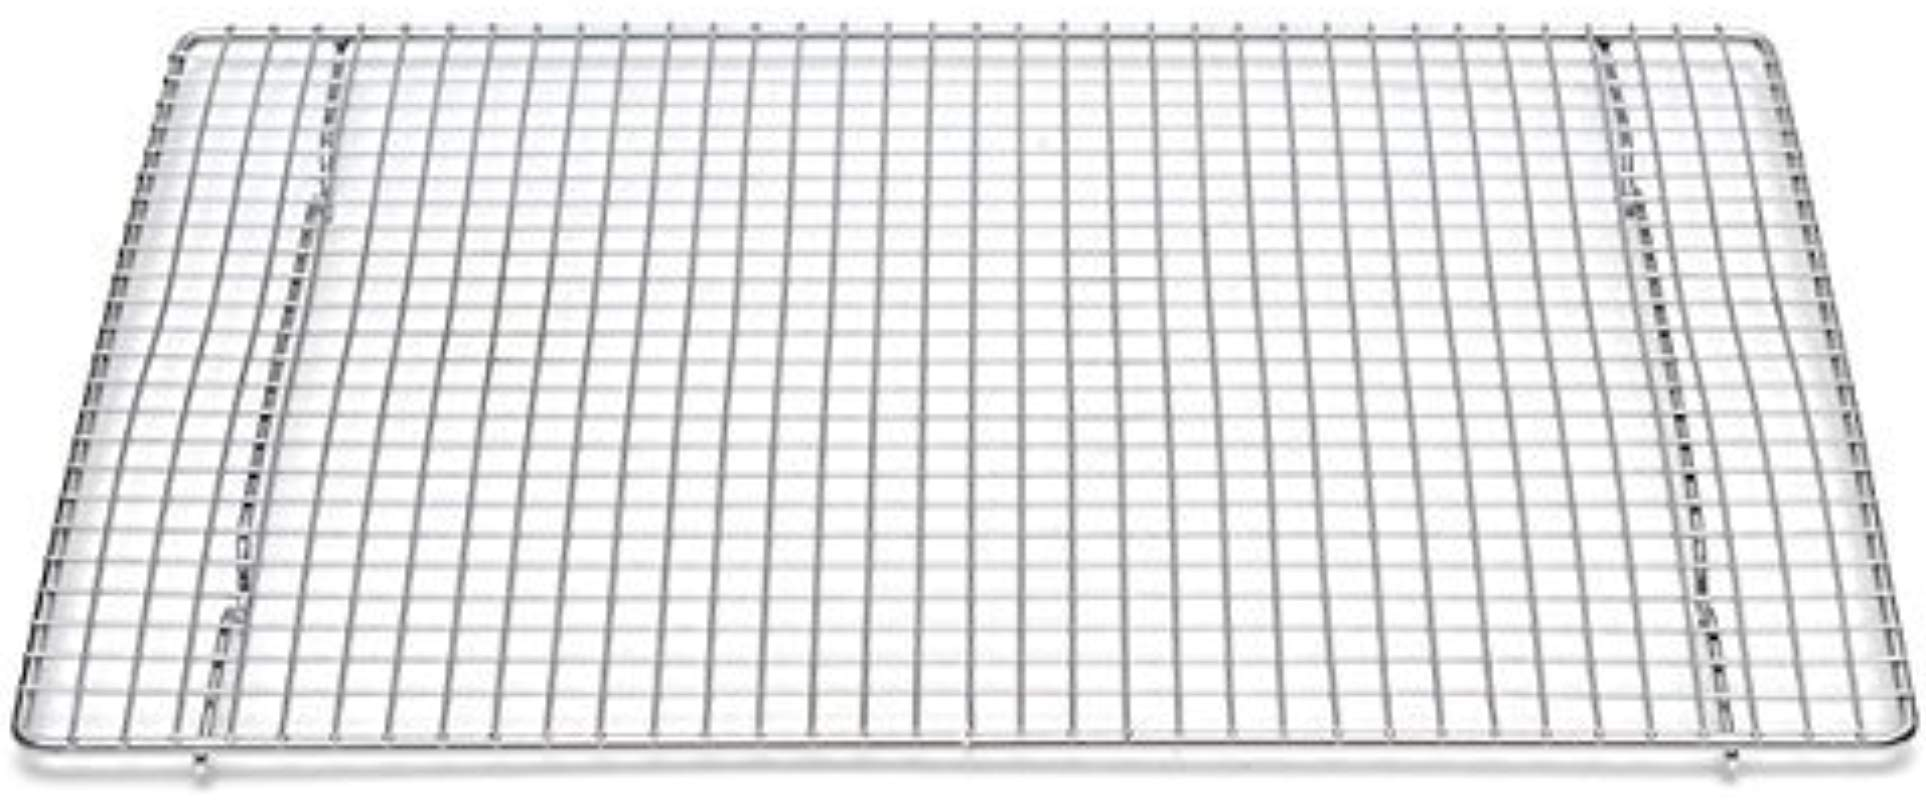 Professional Cross Wire Cooling Rack Half Sheet Pan Grate 16 1 2 X 12 Drip Screen 2 Pack